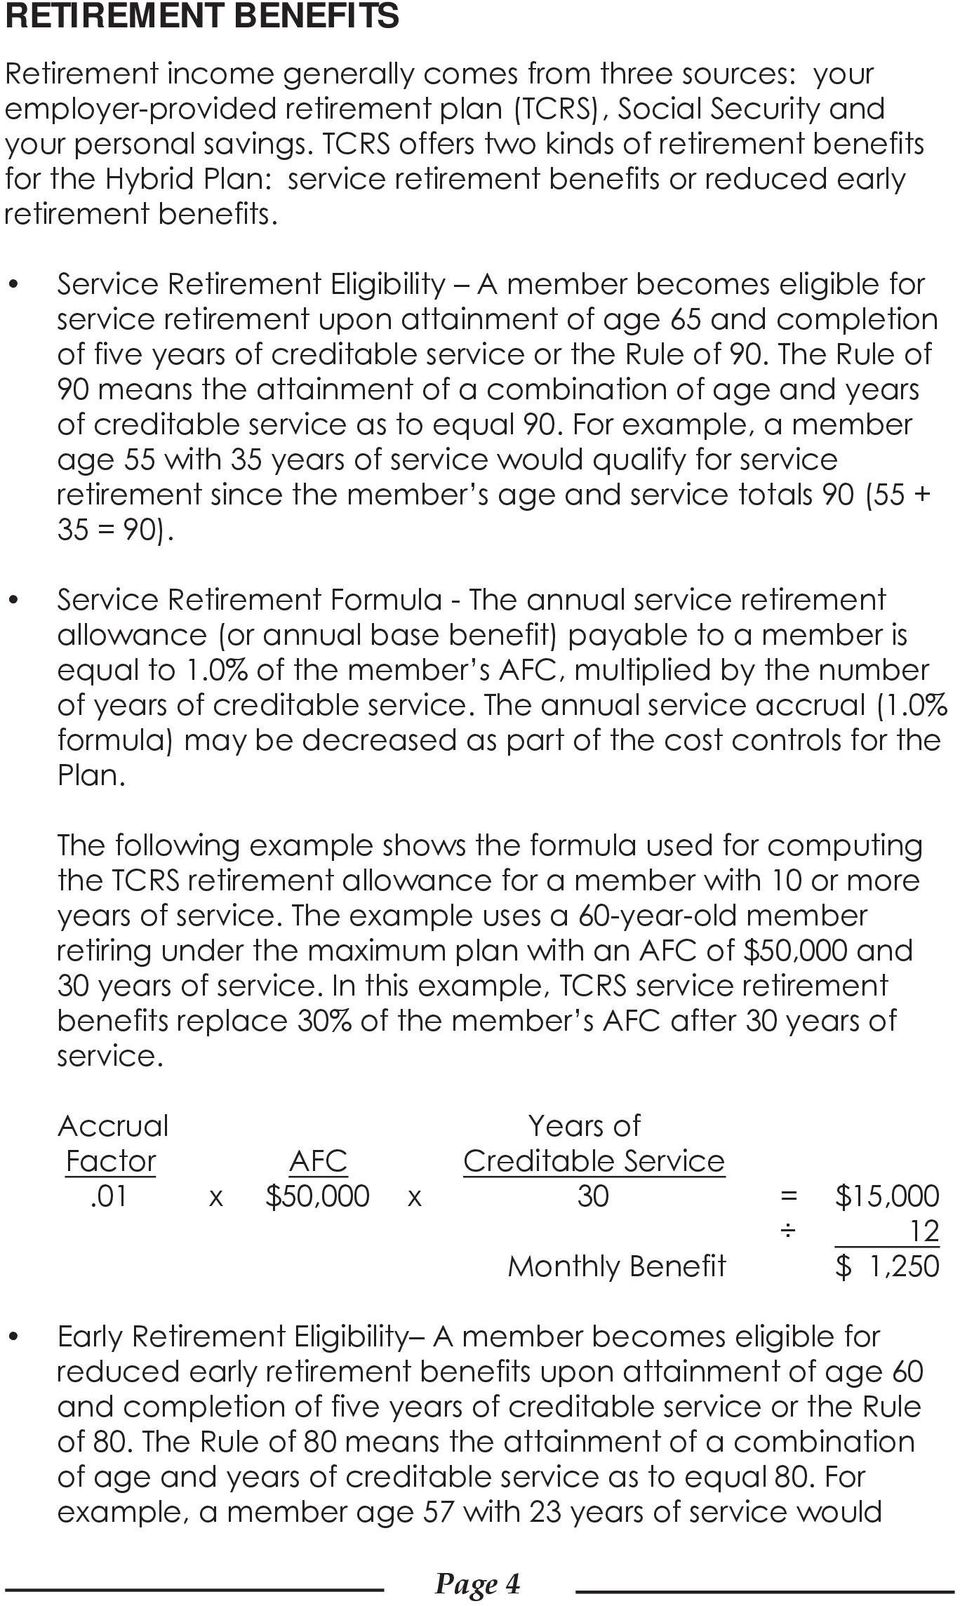 Service Retirement Eligibility A member becomes eligible for service retirement upon attainment of age 65 and completion of five years of creditable service or the Rule of 90.